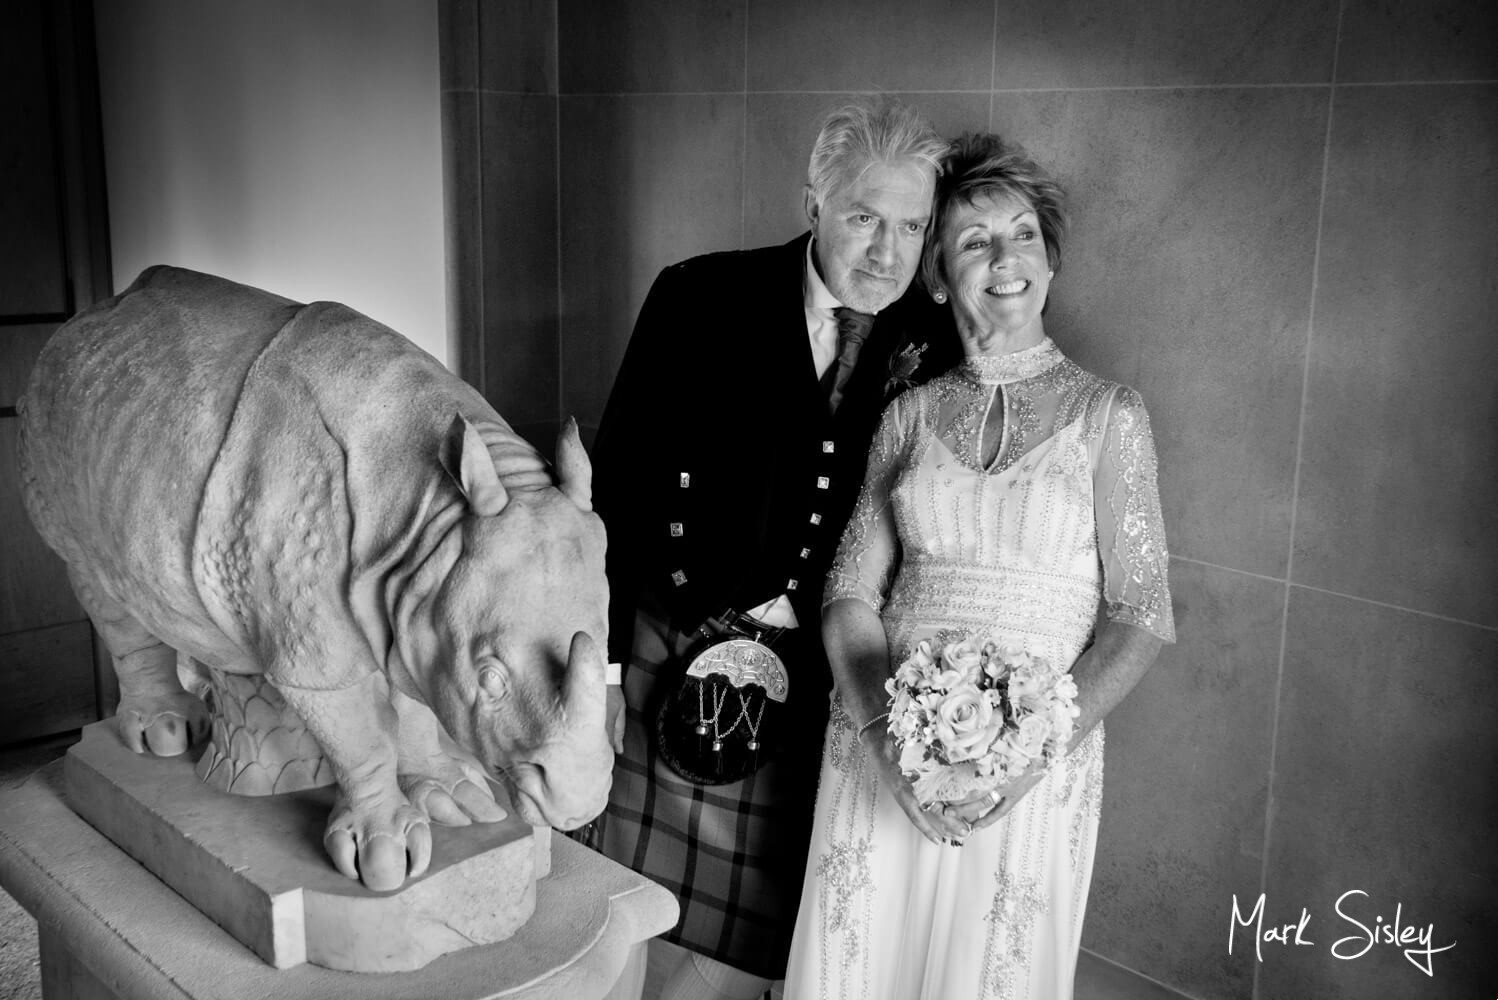 The newlyweds pose for my camera at their Dairy Waddesdon Scottish themed wedding